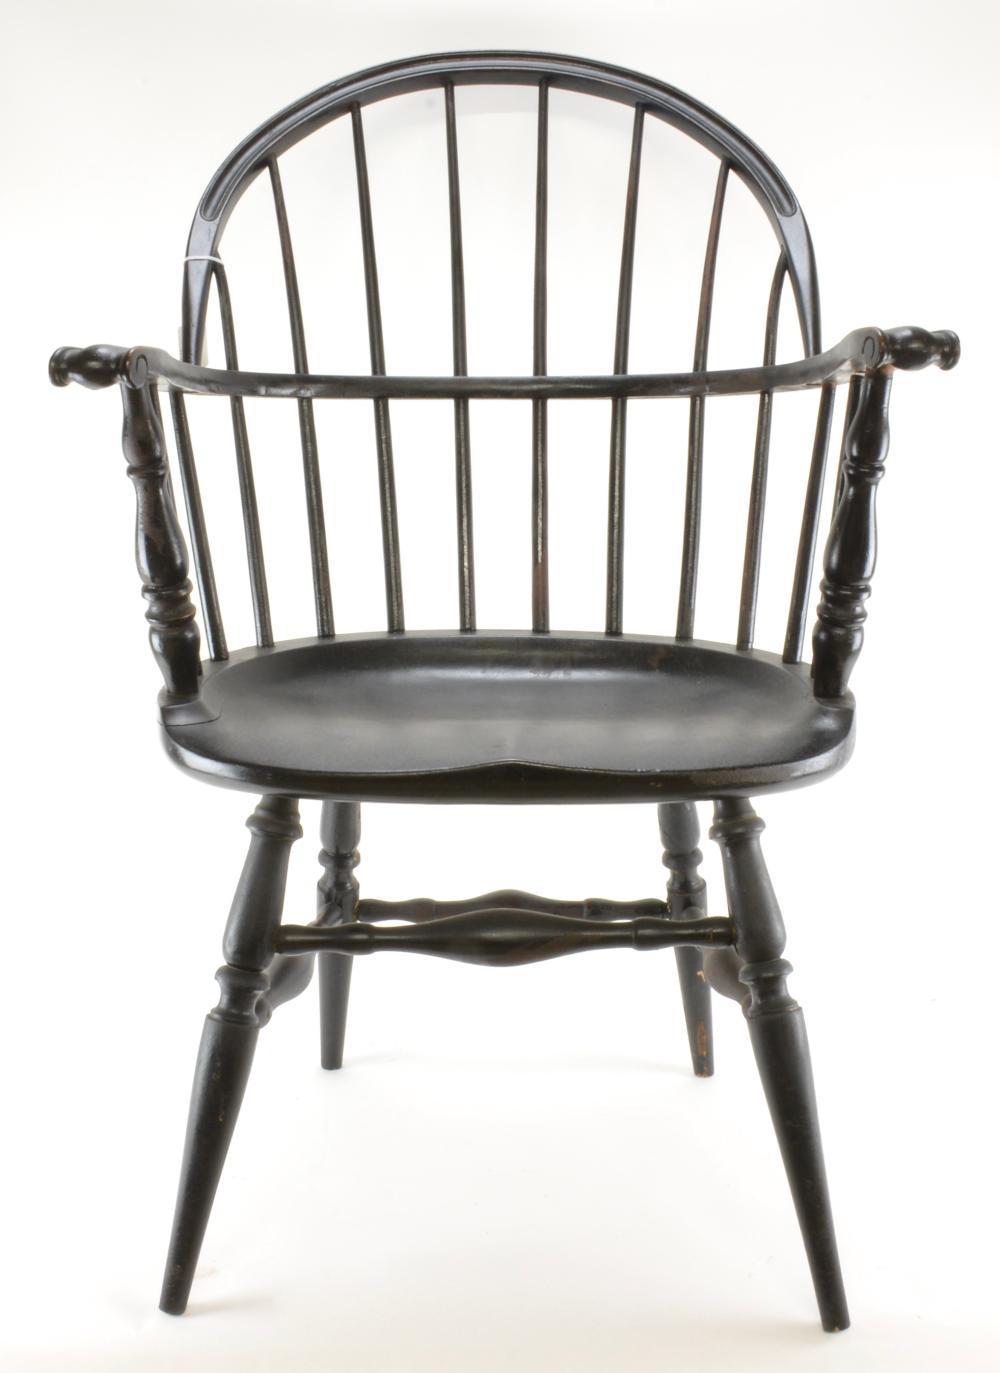 The Marble & Shattuck Chair Co. Windsor Style Armchair